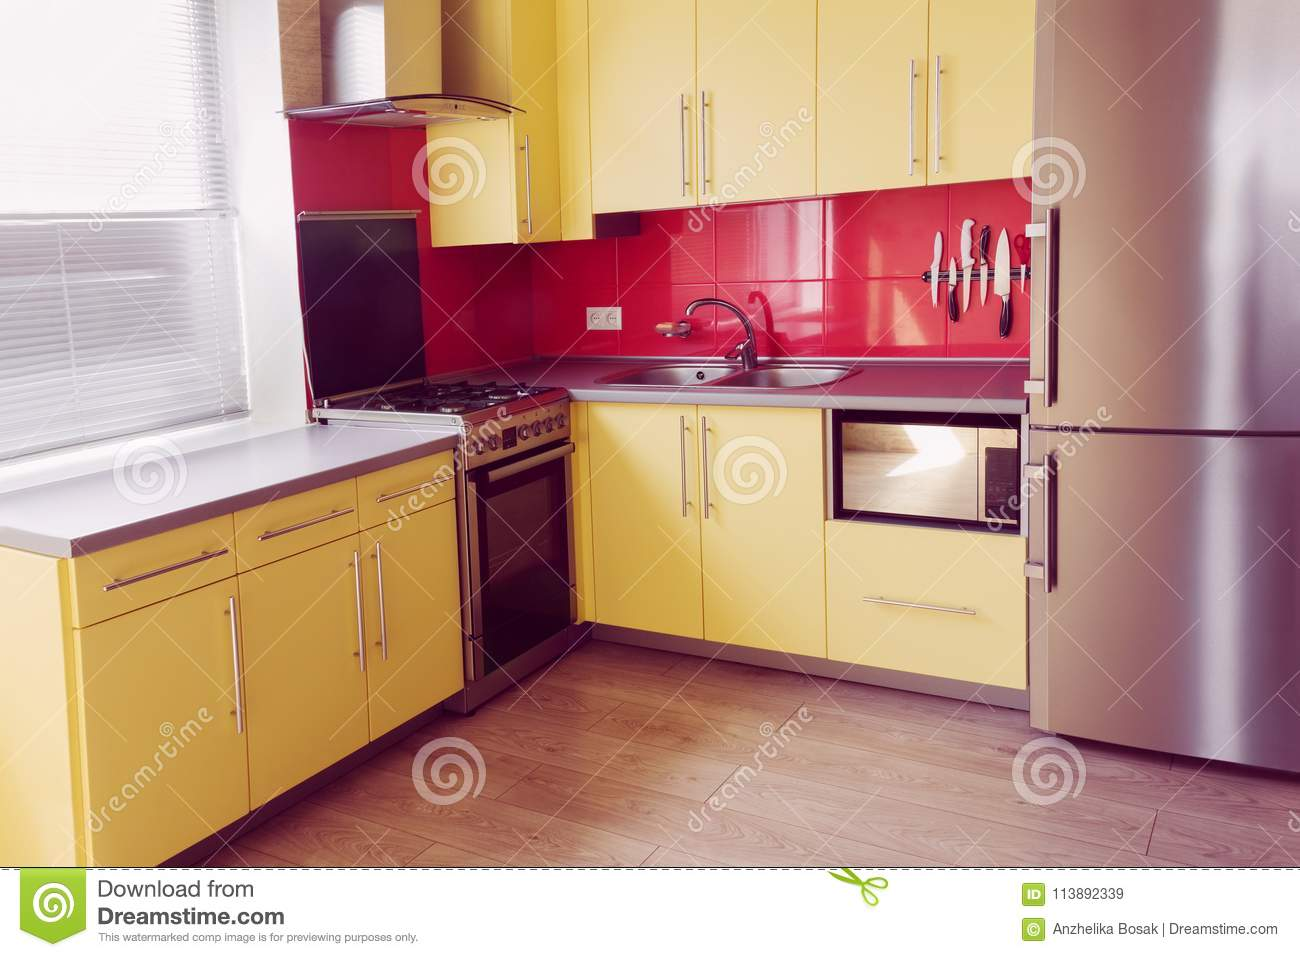 Yellow Kitchen With Red Tiles Stock Image - Image of ...